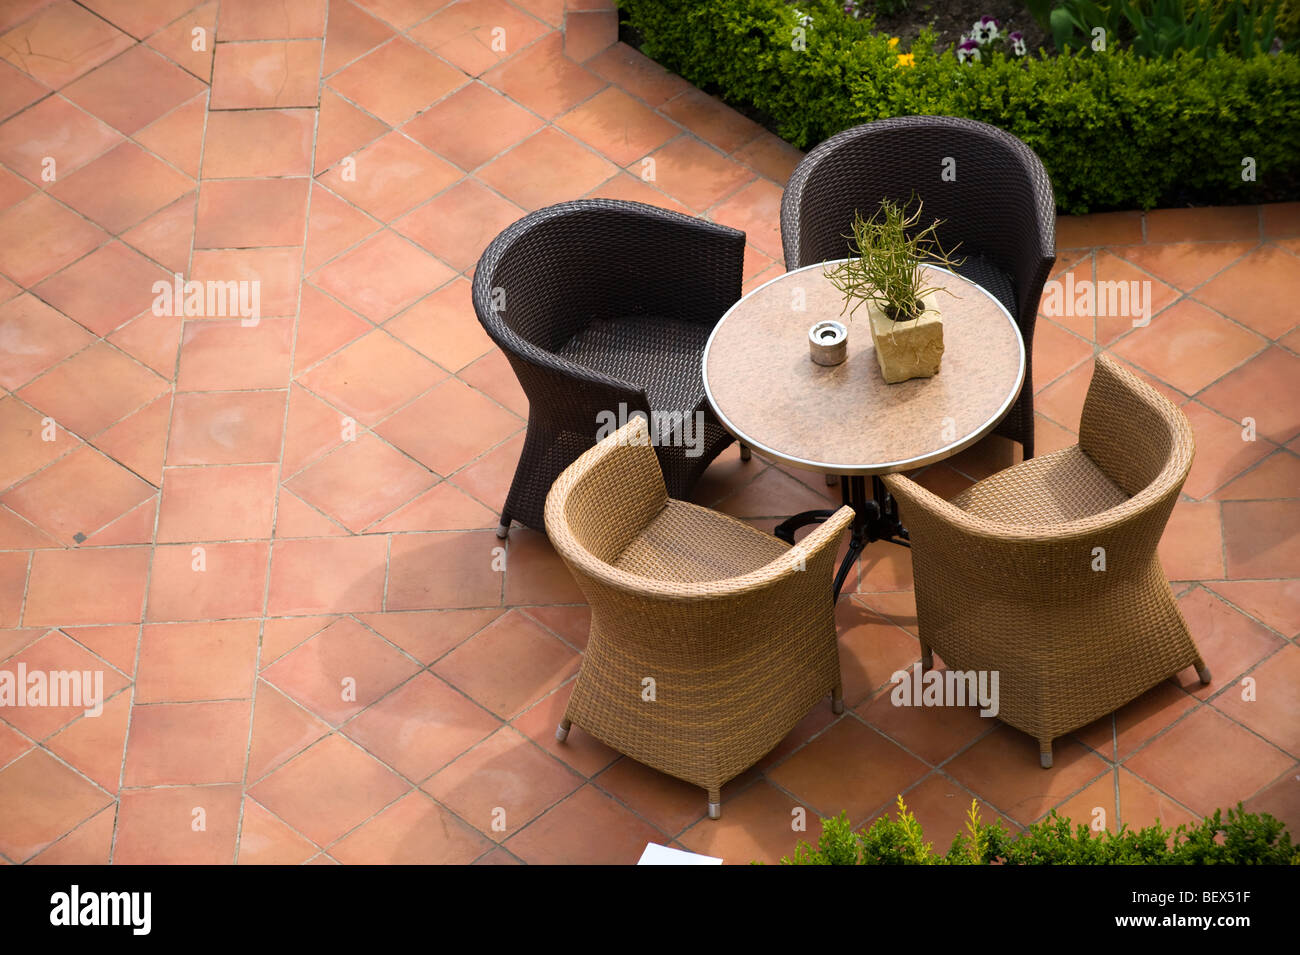 patio scene - Stock Image